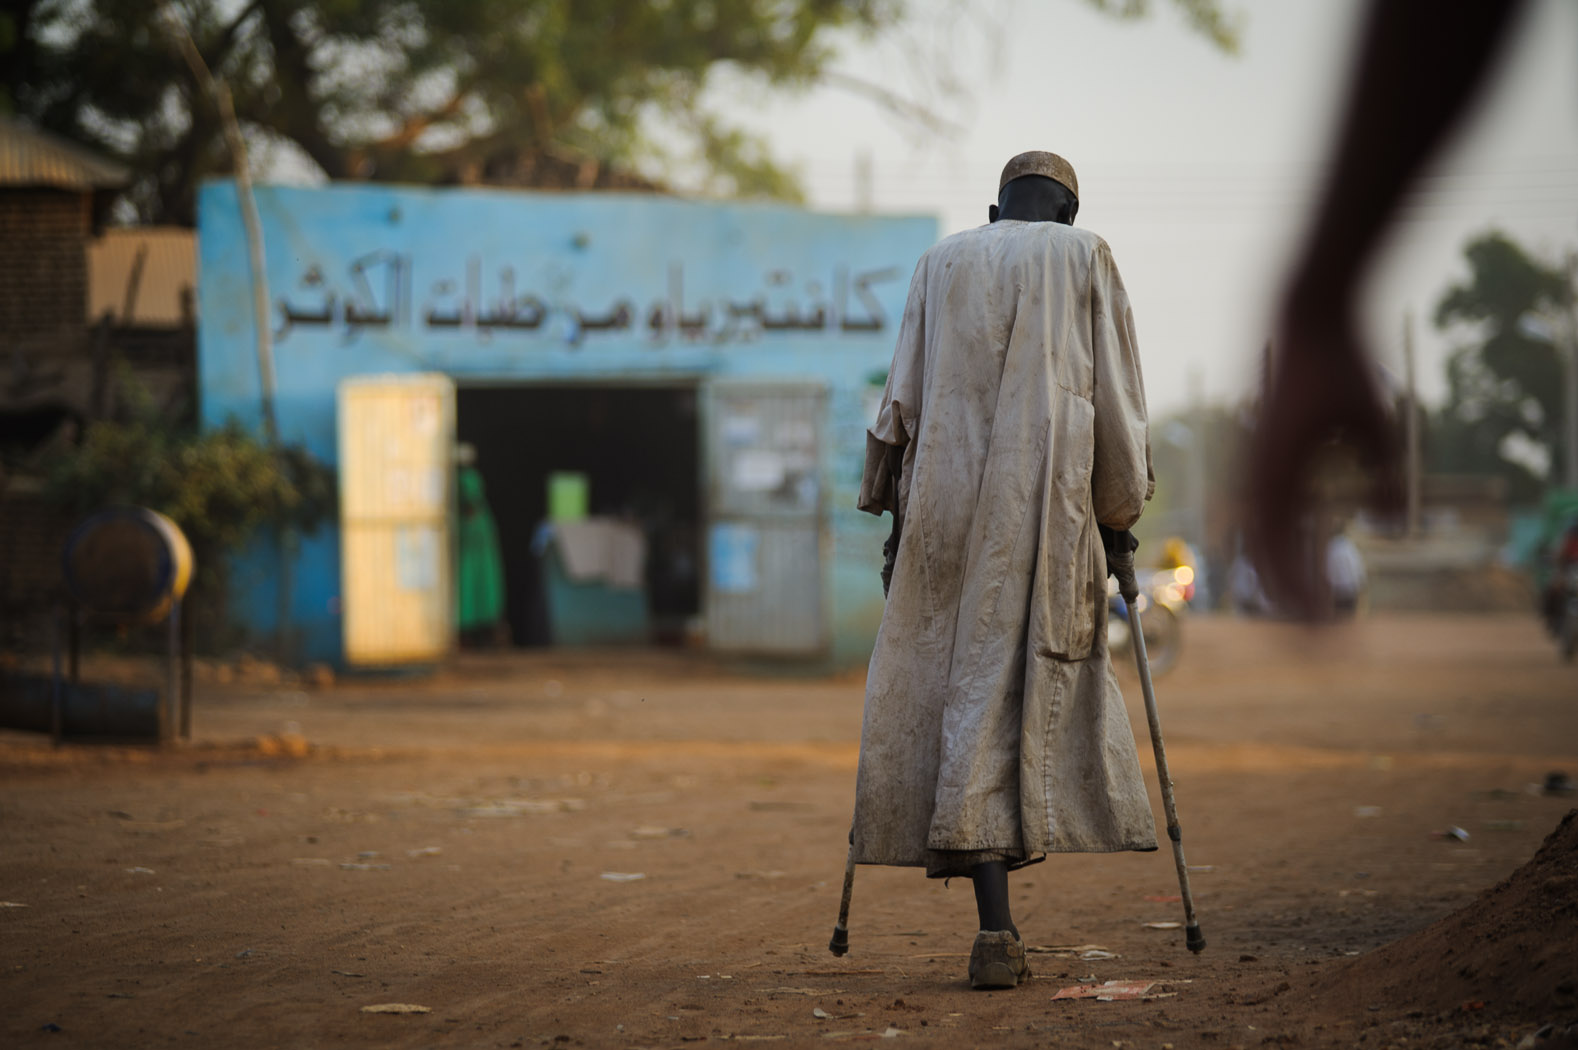 The cost on the civil war was devastating for South Sudan's citizens, with millions fleeing the country as refugees, and many of those who stayed losing their homes, their limbs, or even their lives, in attacks.